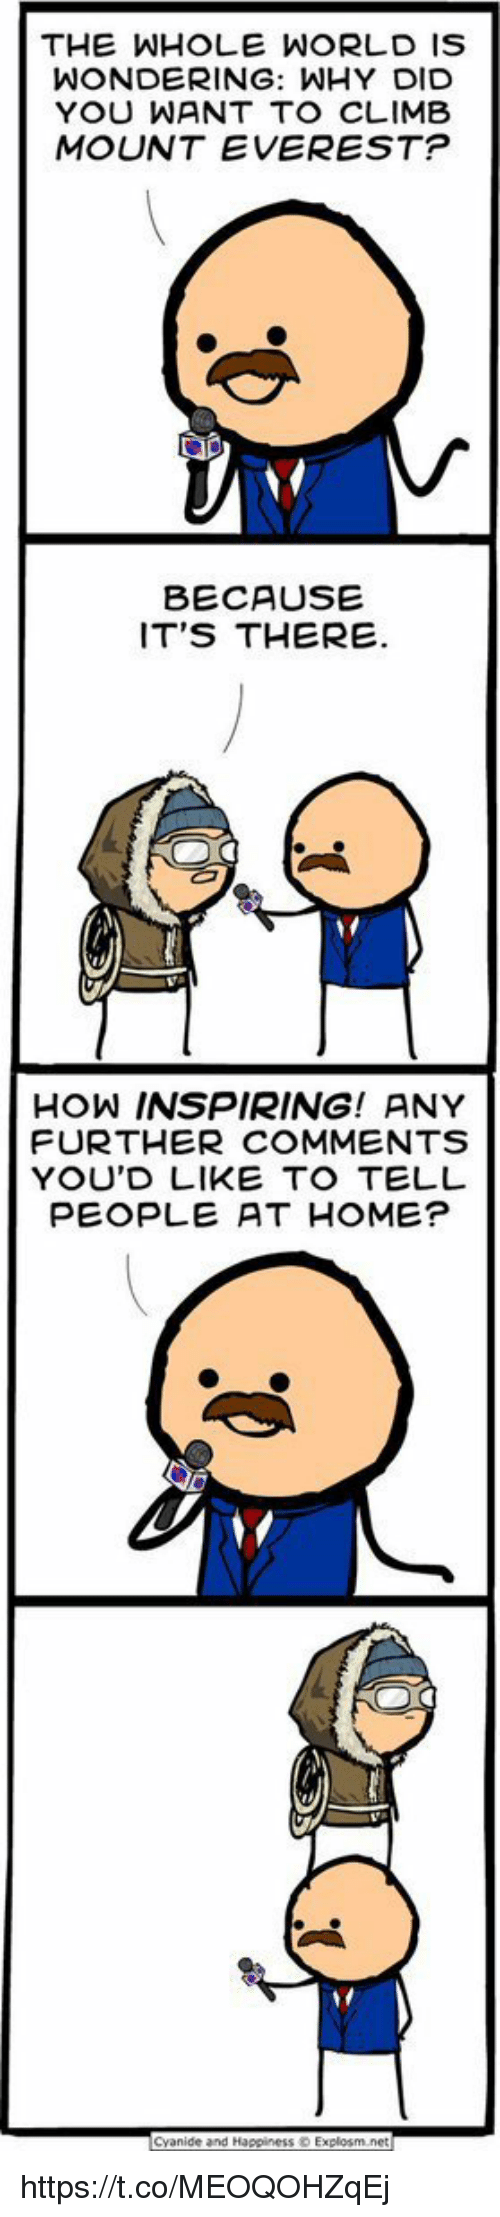 Home, World, and Happiness: THE WHOLE WORLD IS  WONDERING: WHY DID  YOU WANT TO CLIMB  MOUNT EVEREST?  BECAUSE  IT'S THERE  HOW INSPIRING! ANY  FURTHER COMMENTS  YOU'D LIKE TO TELL  PEOPLE AT HOME?  Canide and Happiness Explosm net https://t.co/MEOQOHZqEj